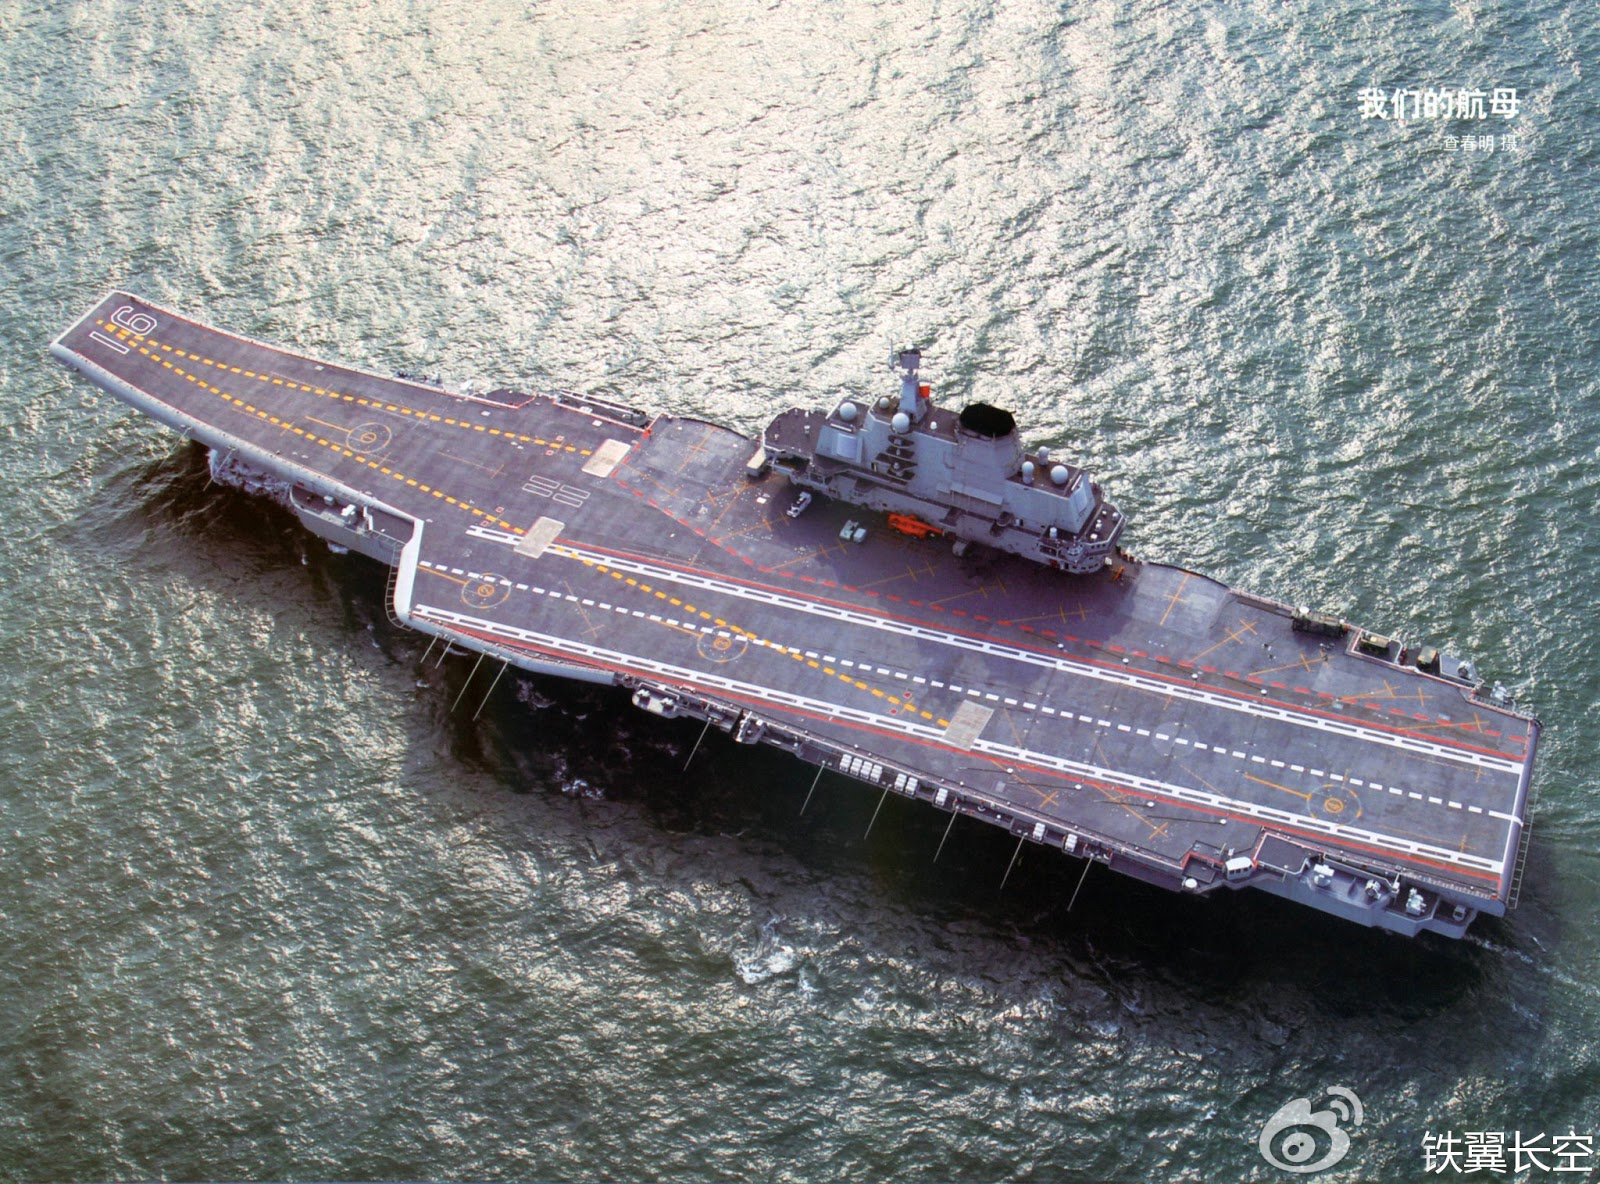 HQ Image of Chinese Liaoning CV16 Aircraft Carrier at Sea